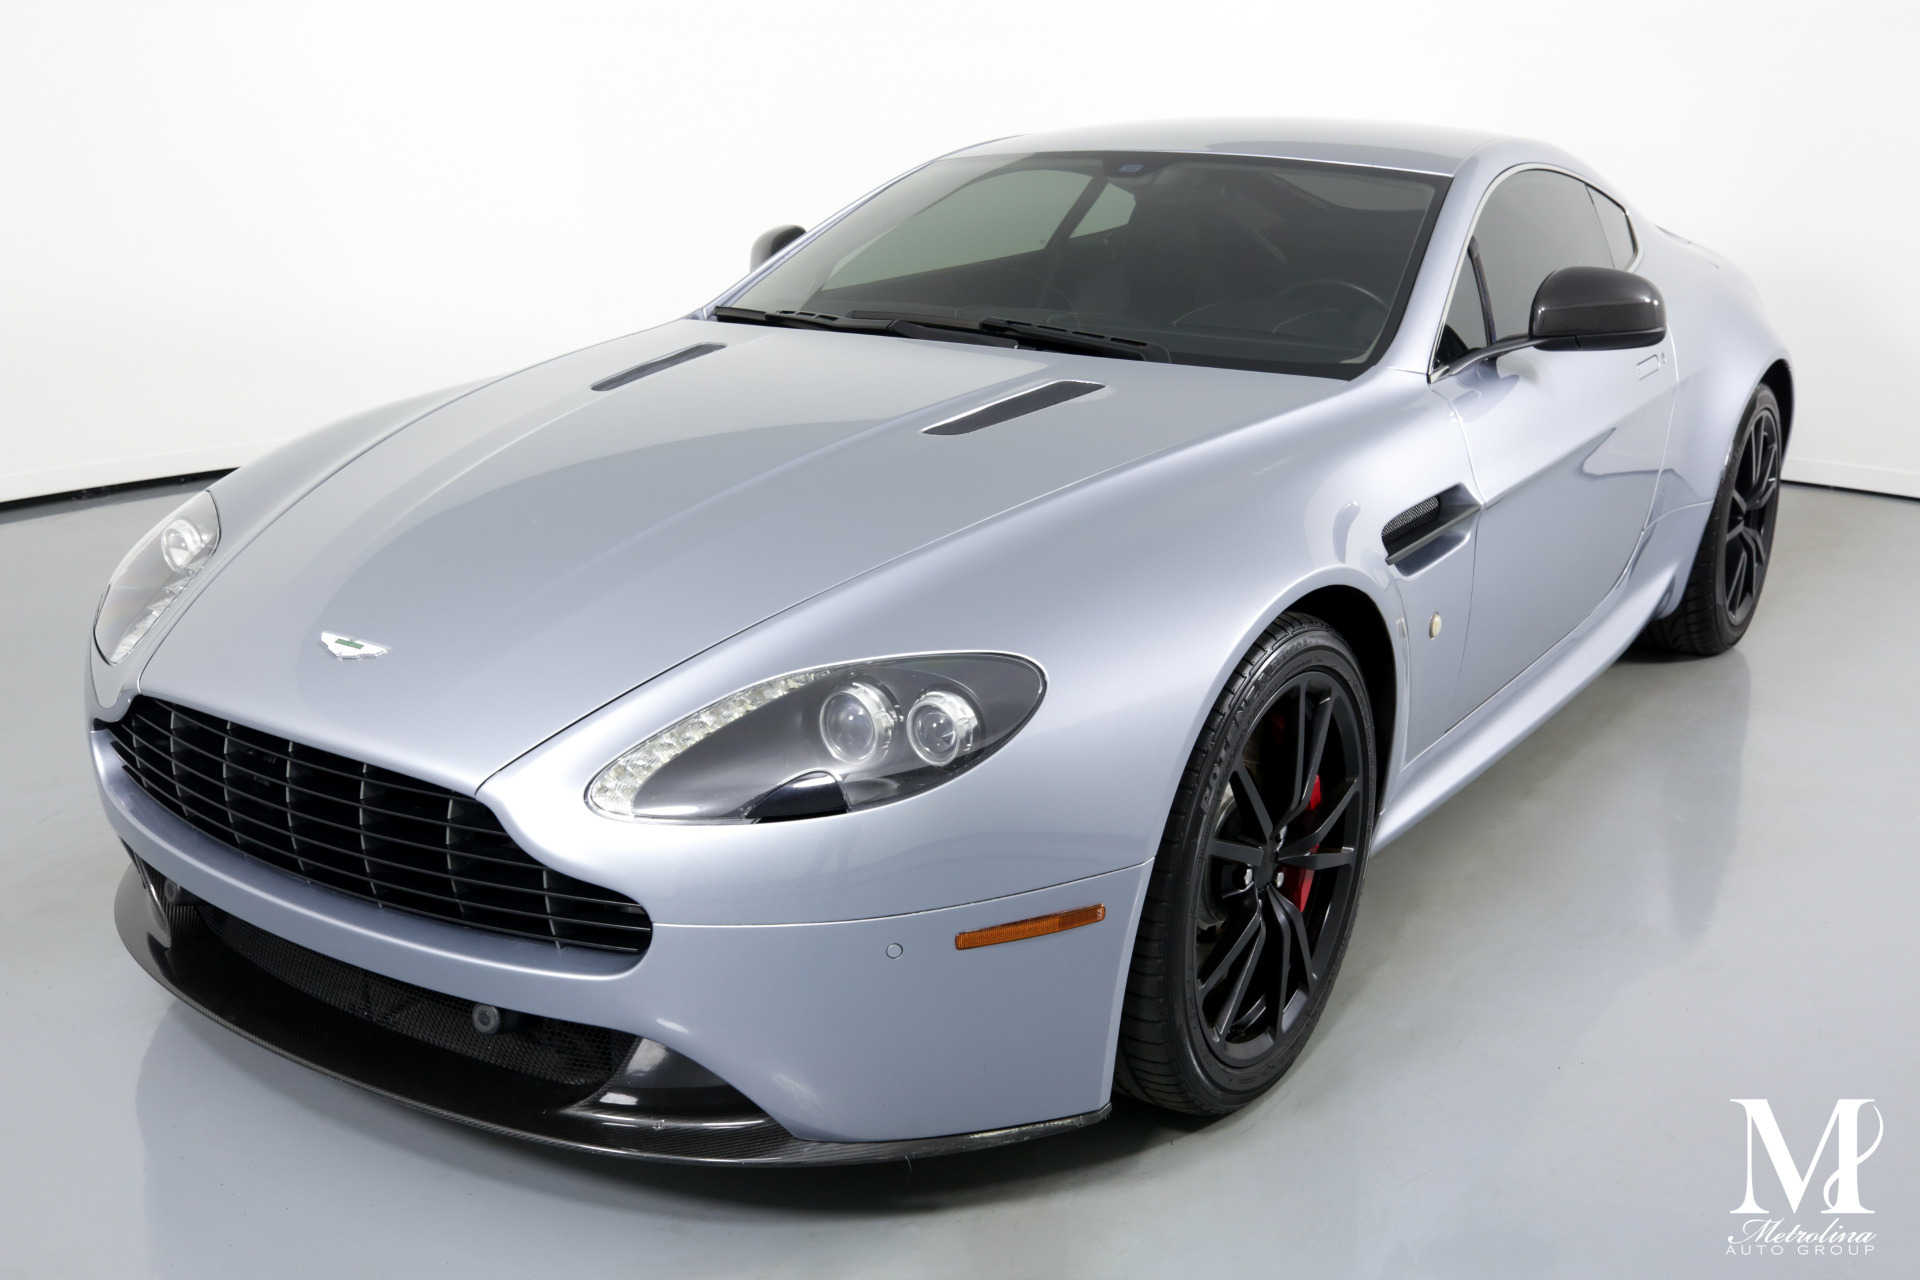 Used 2014 Aston Martin V8 Vantage for sale $49,996 at Metrolina Auto Group in Charlotte NC 28217 - 4